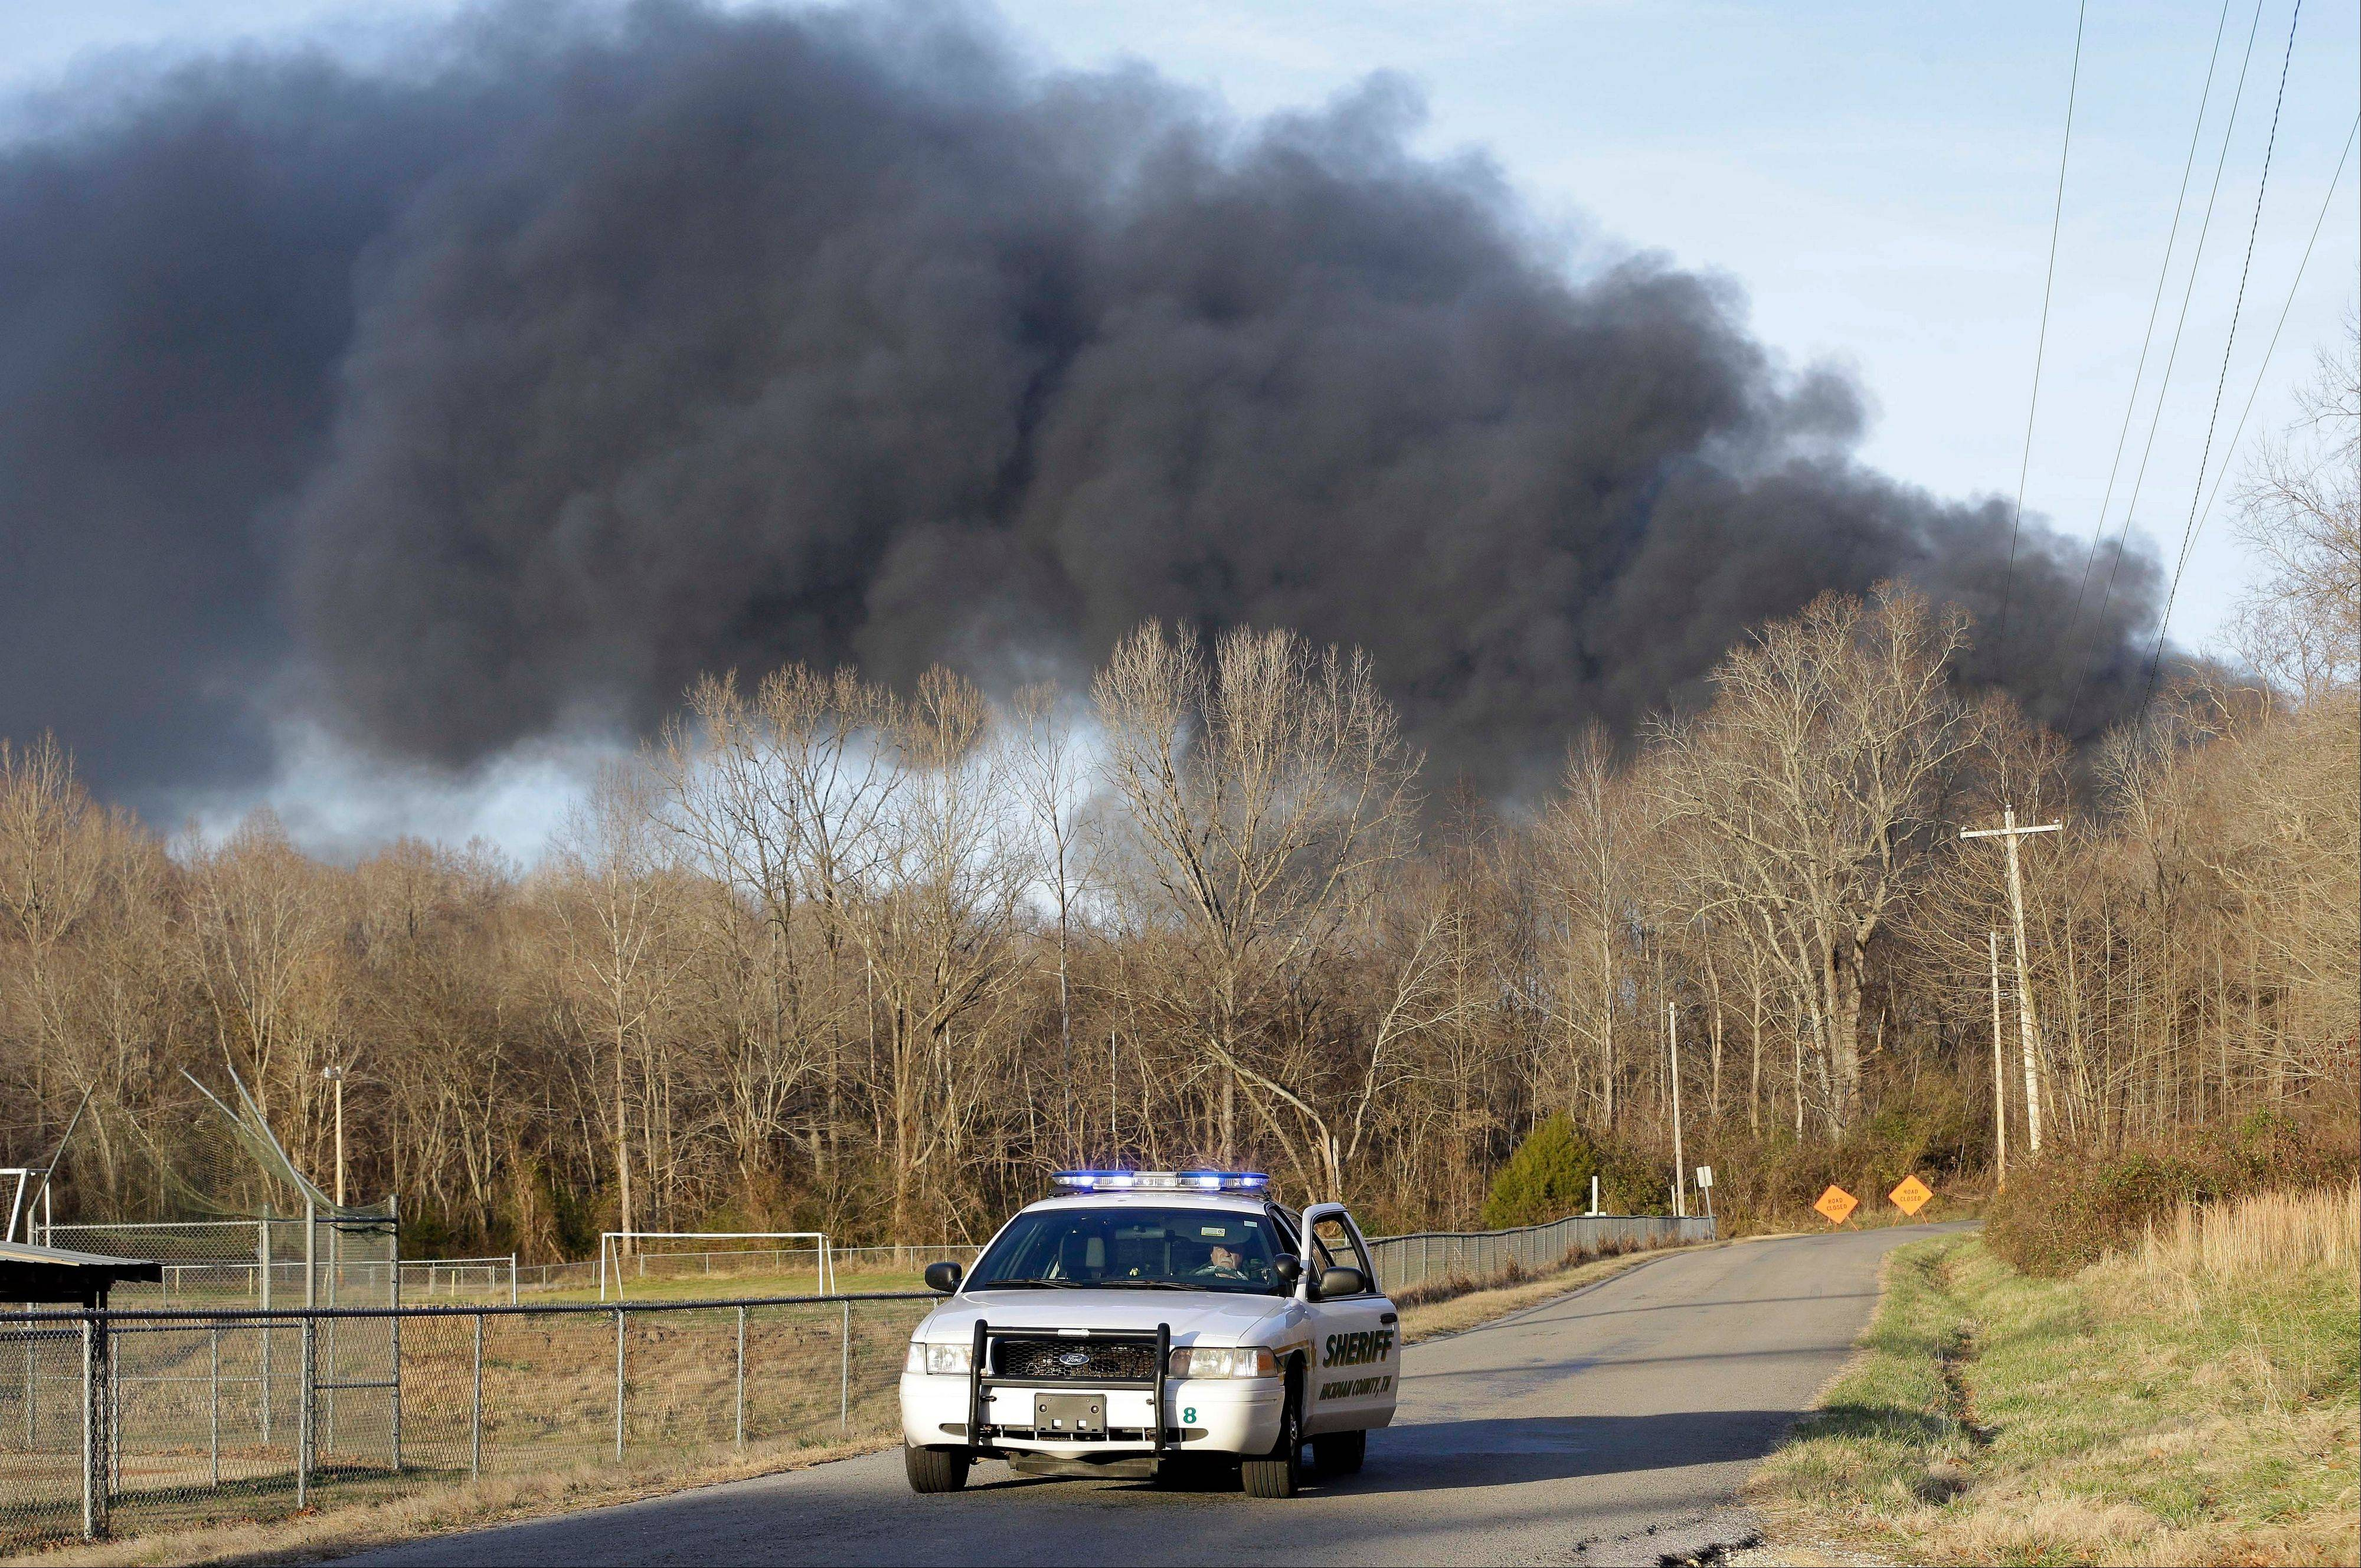 Smoke rises from a fire at a burning plastics recycling plant on a contaminated federal Superfund site on Wednesday, Dec. 18, 2013, near Lyles, Tenn. Officials evacuated area homes because they were concerned about toxic fumes.